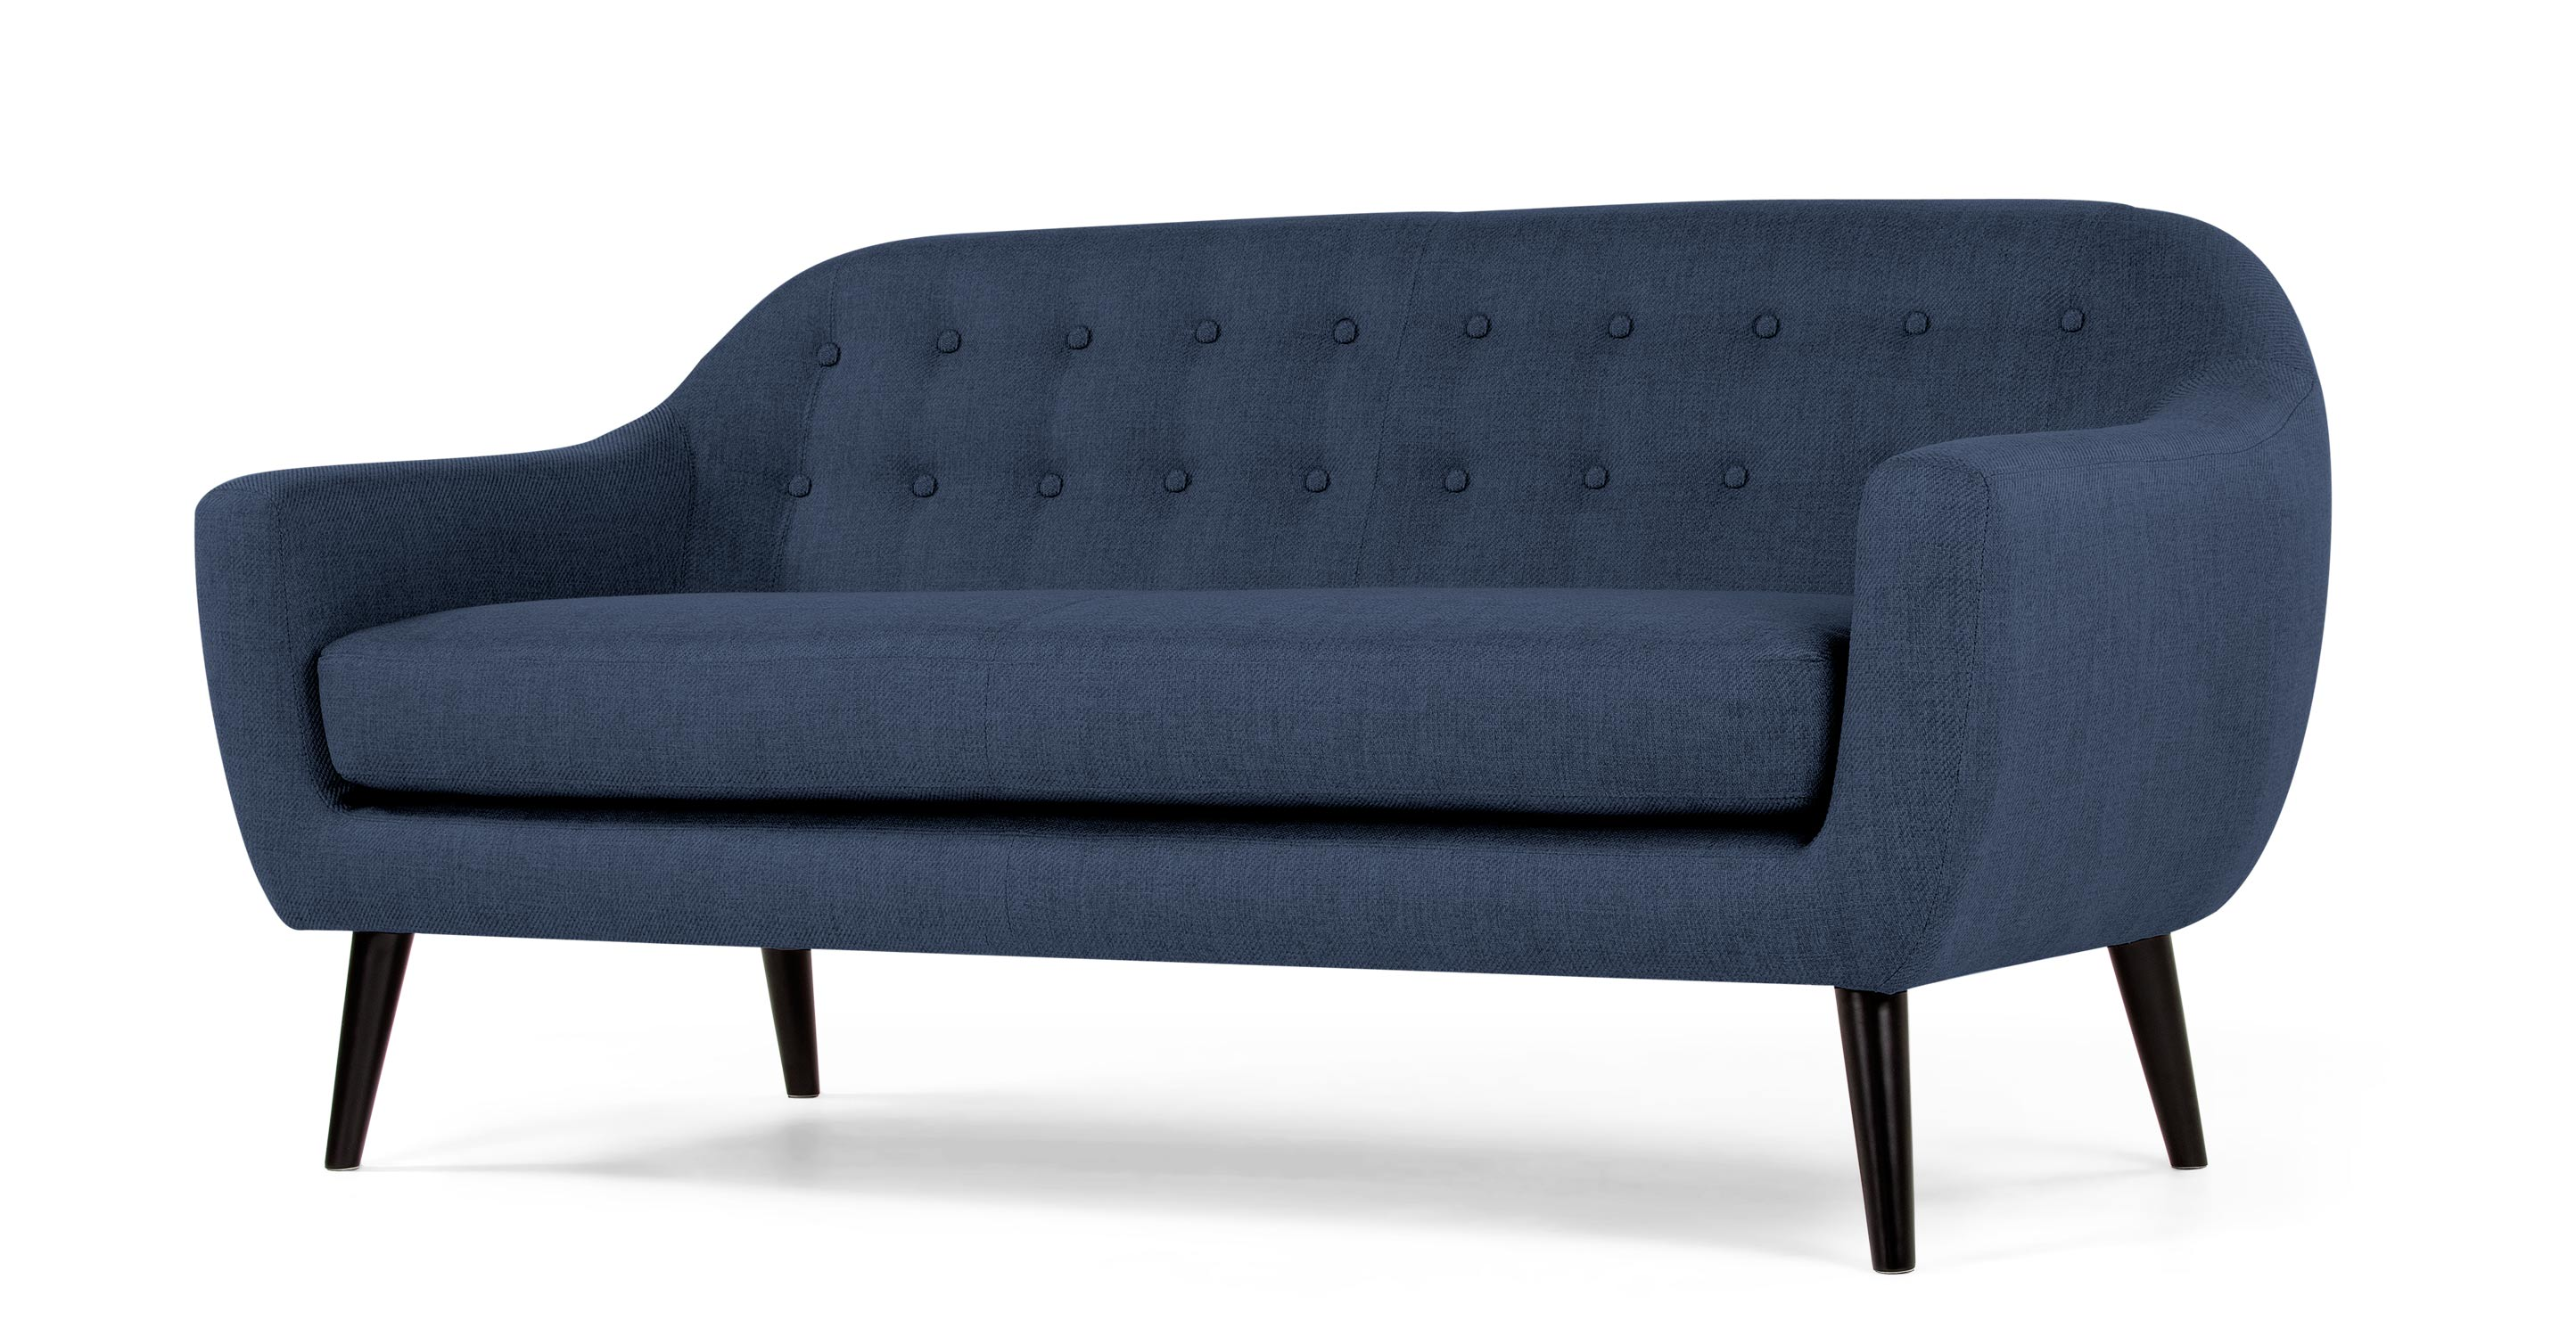 ritchie 3 sitzer sofa in dunkelblau. Black Bedroom Furniture Sets. Home Design Ideas